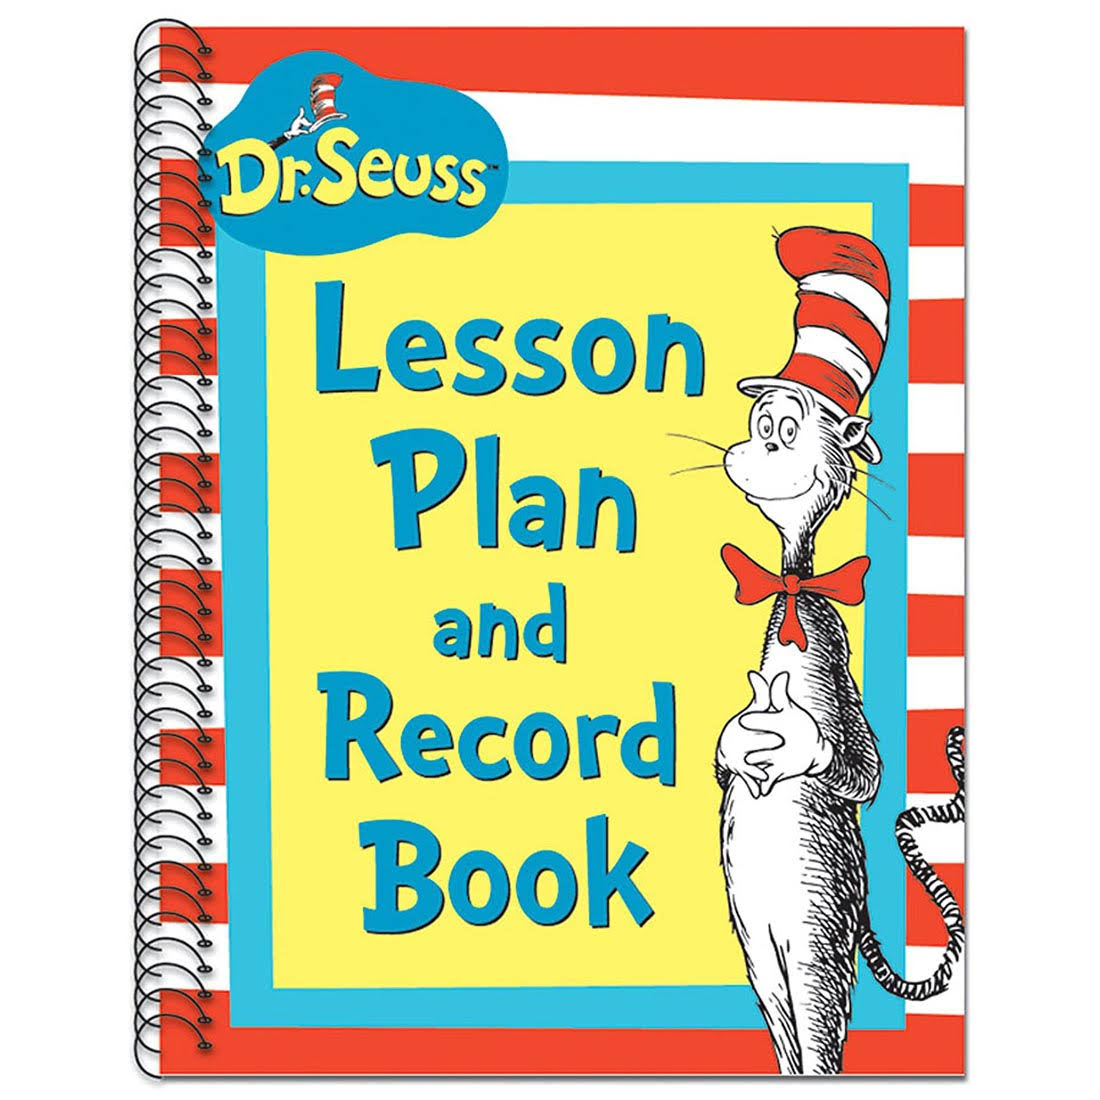 Eureka EU-866220 Cat In The Hat Lesson Plan And Record Book